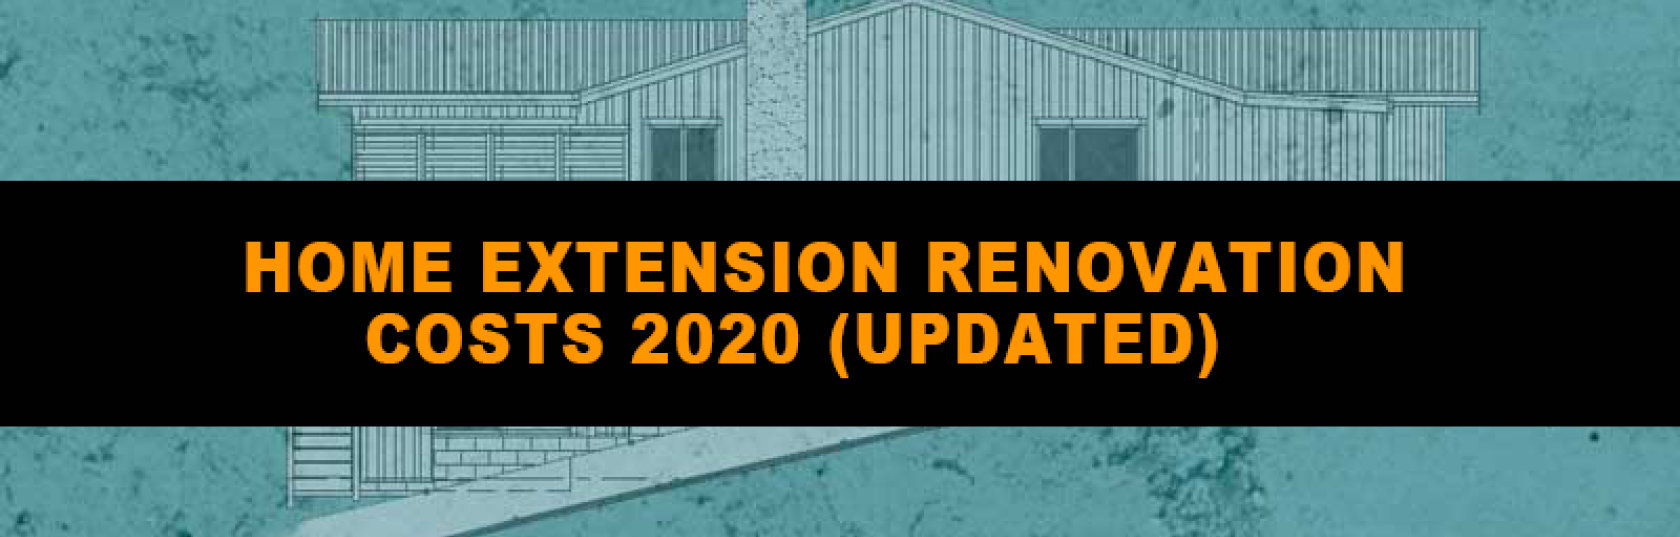 Home Extension Renovation Costs 2020 (updated).